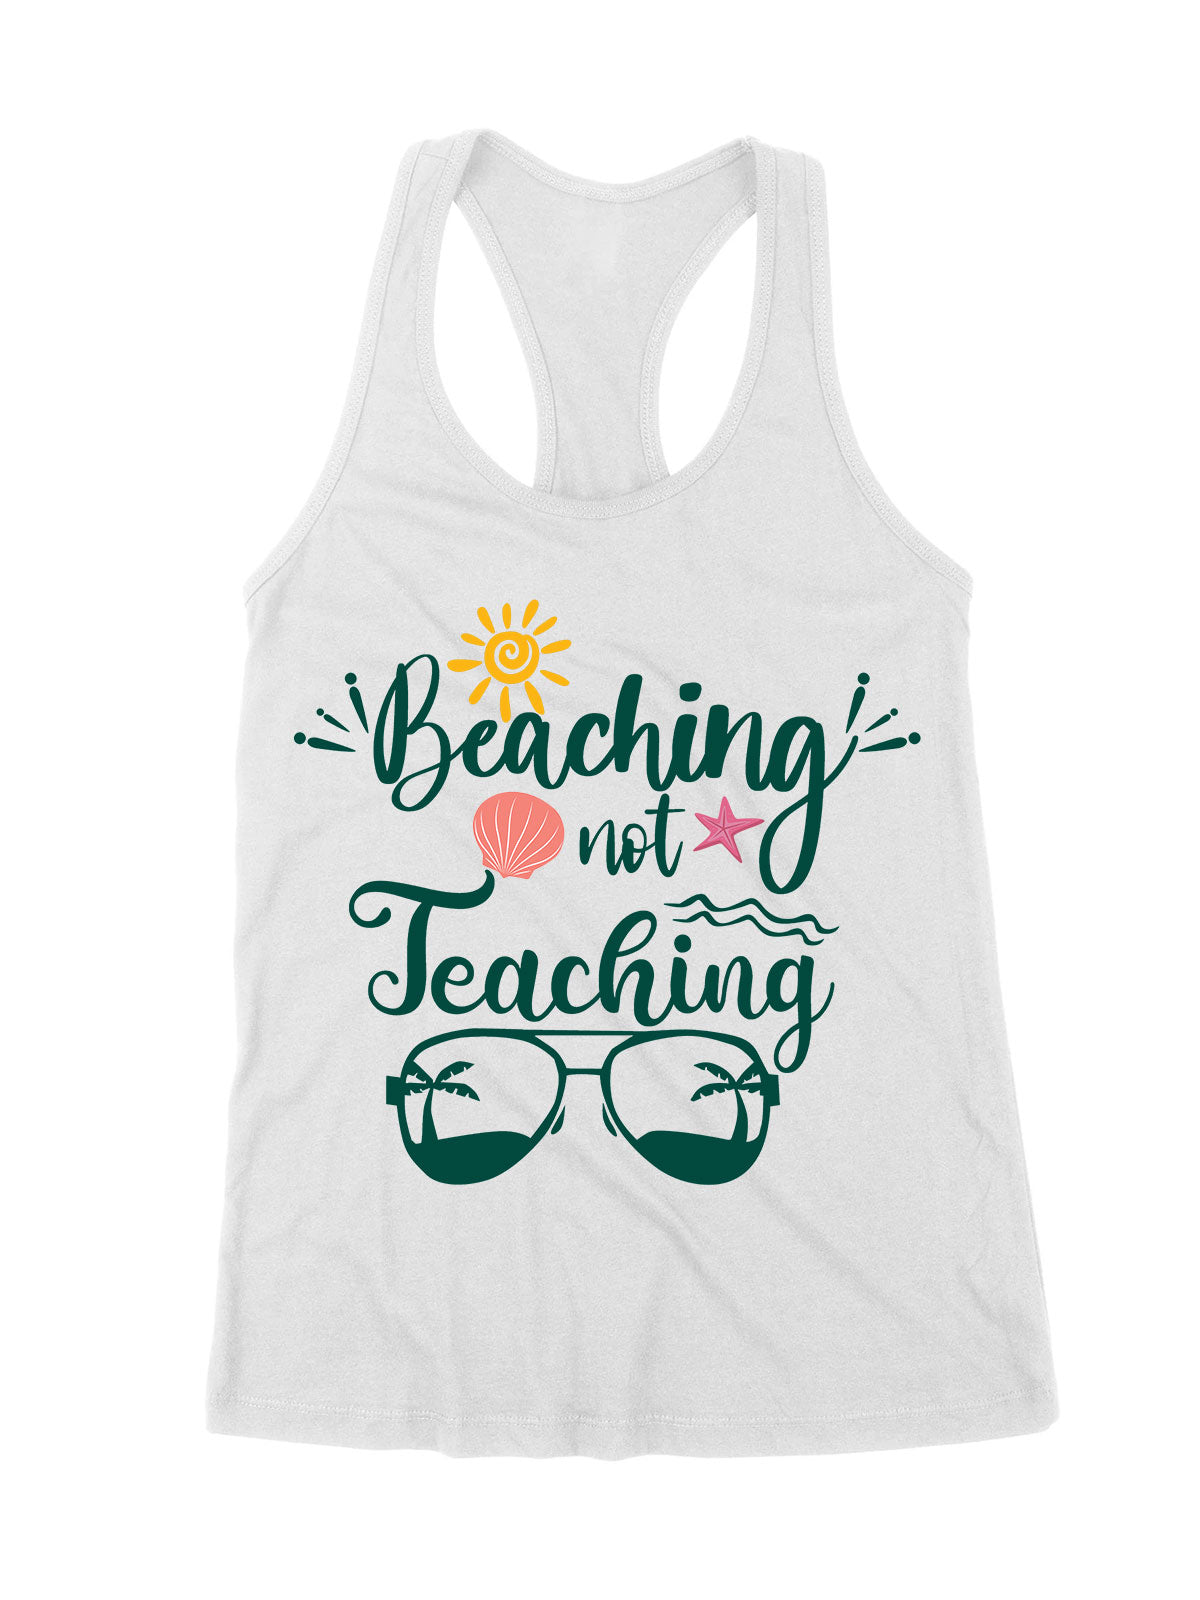 Premium Women's Tank - Beaching Not Teaching - Beach T-shirt - Summer T-shirt - Gift for Teachers - 1671